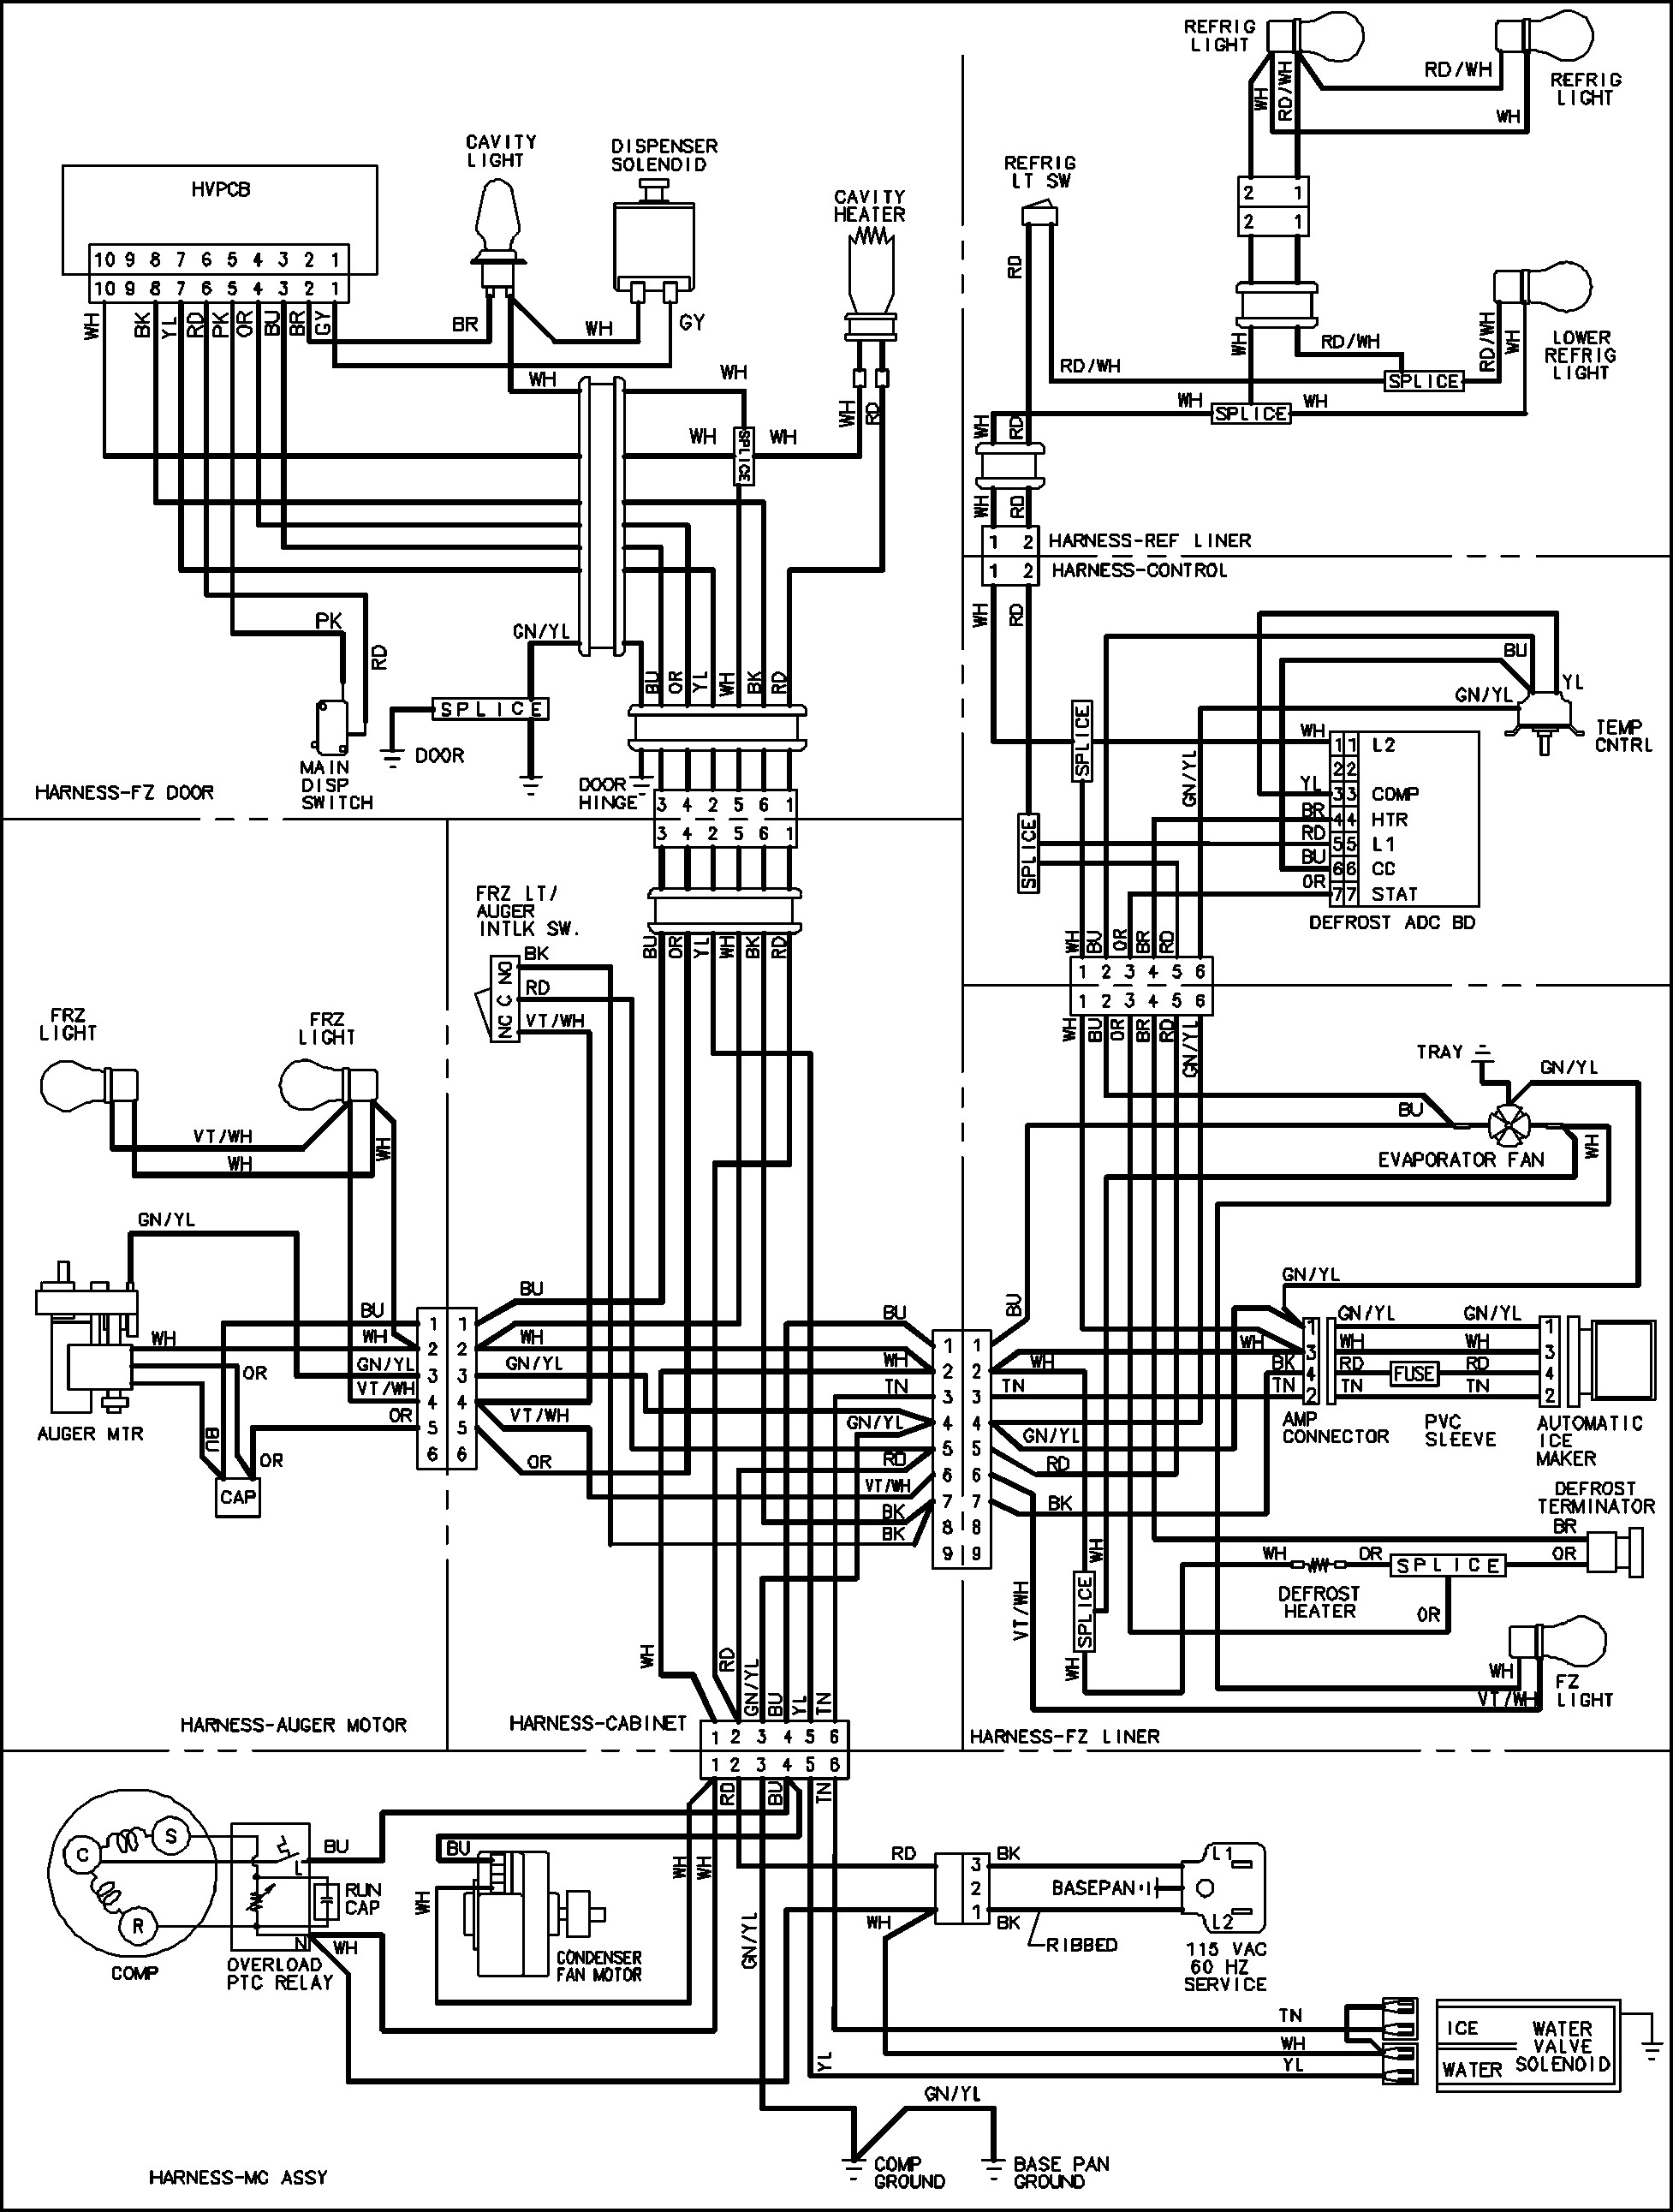 maytag dryer wire diagram